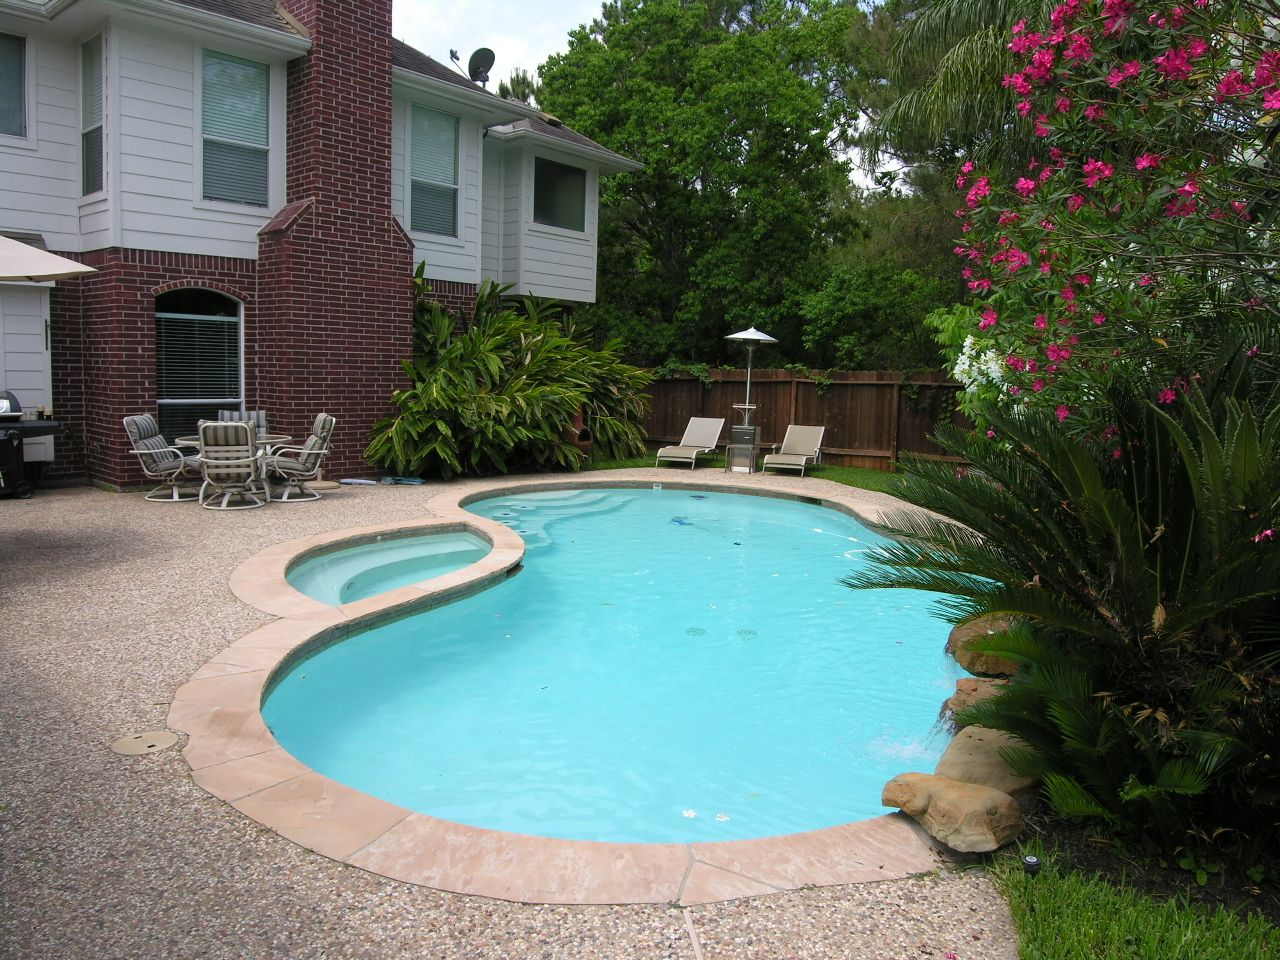 Simple Backyard Pool With Jacuzzi Great Place For Kids And Adults In Secluded Private Pool Backyard Backyard Patio Backyard Pool